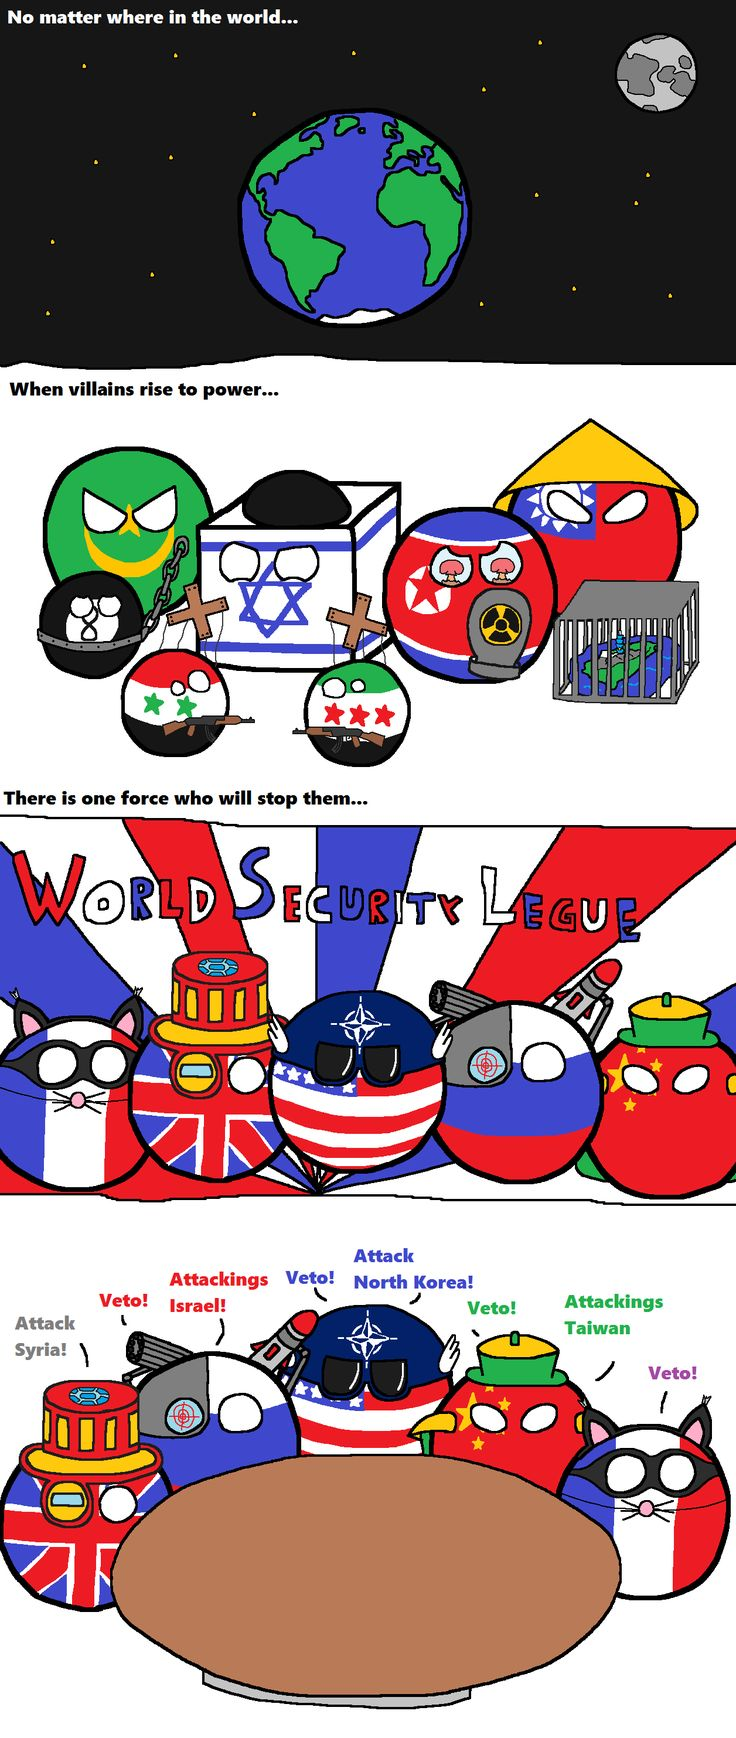 World Security League ( Mauritania, Israel, Syria, North Korea, Taiwan, France, UK, USA, Russia, China ) by malta3  #polandball #countryball